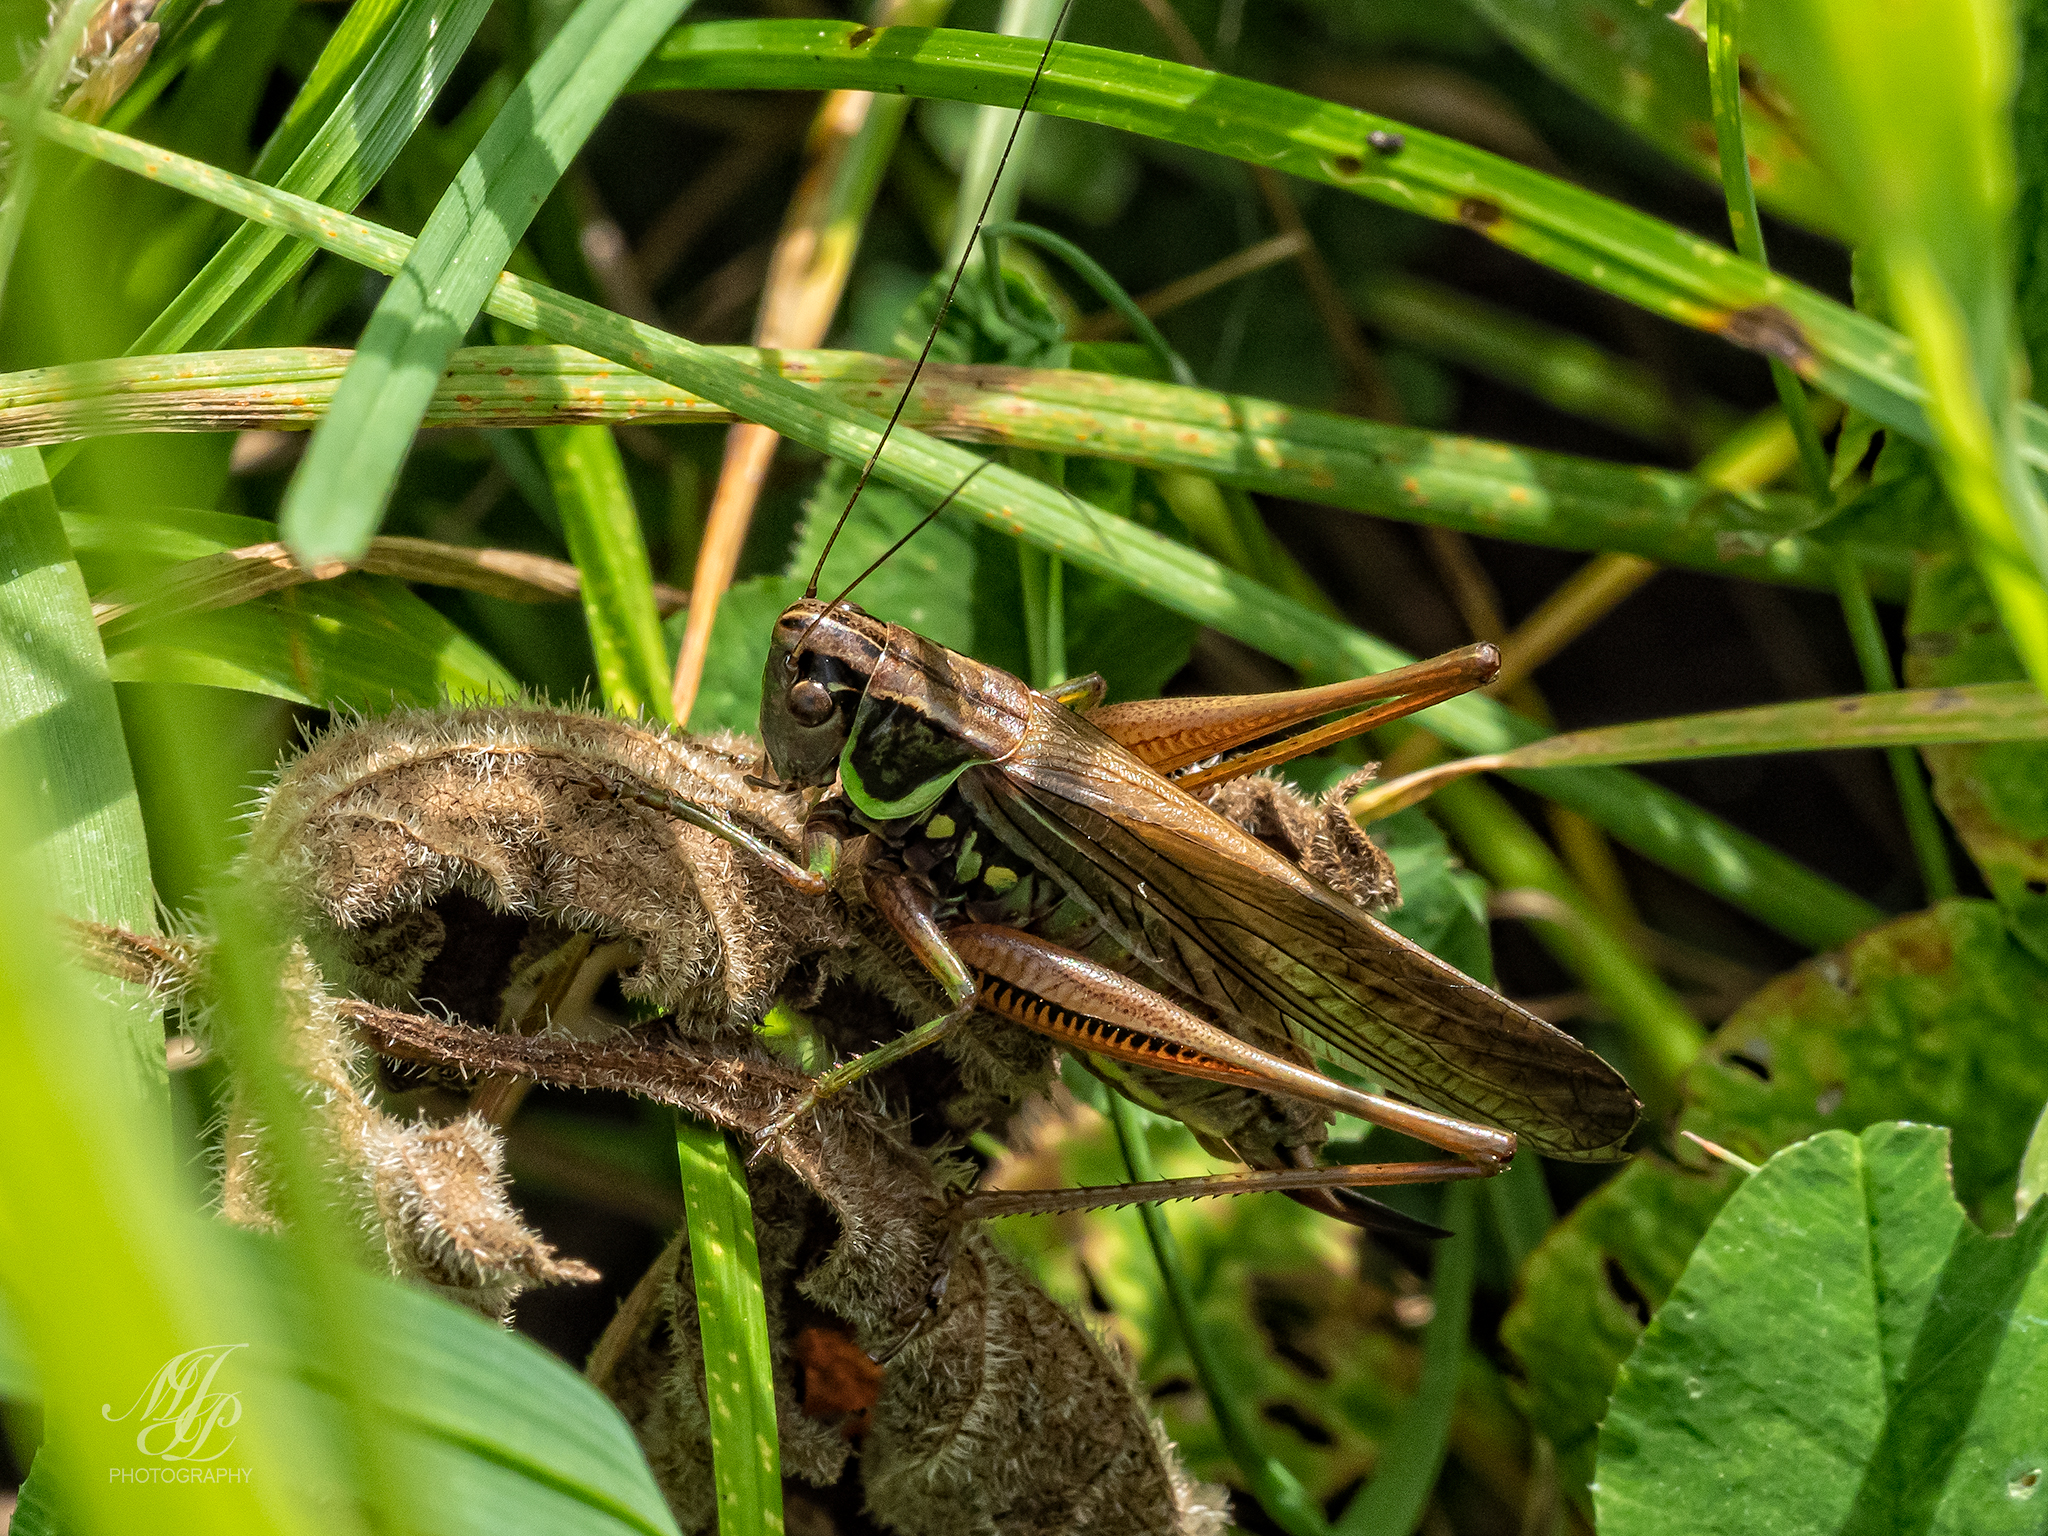 Grasshoppers and Cricket